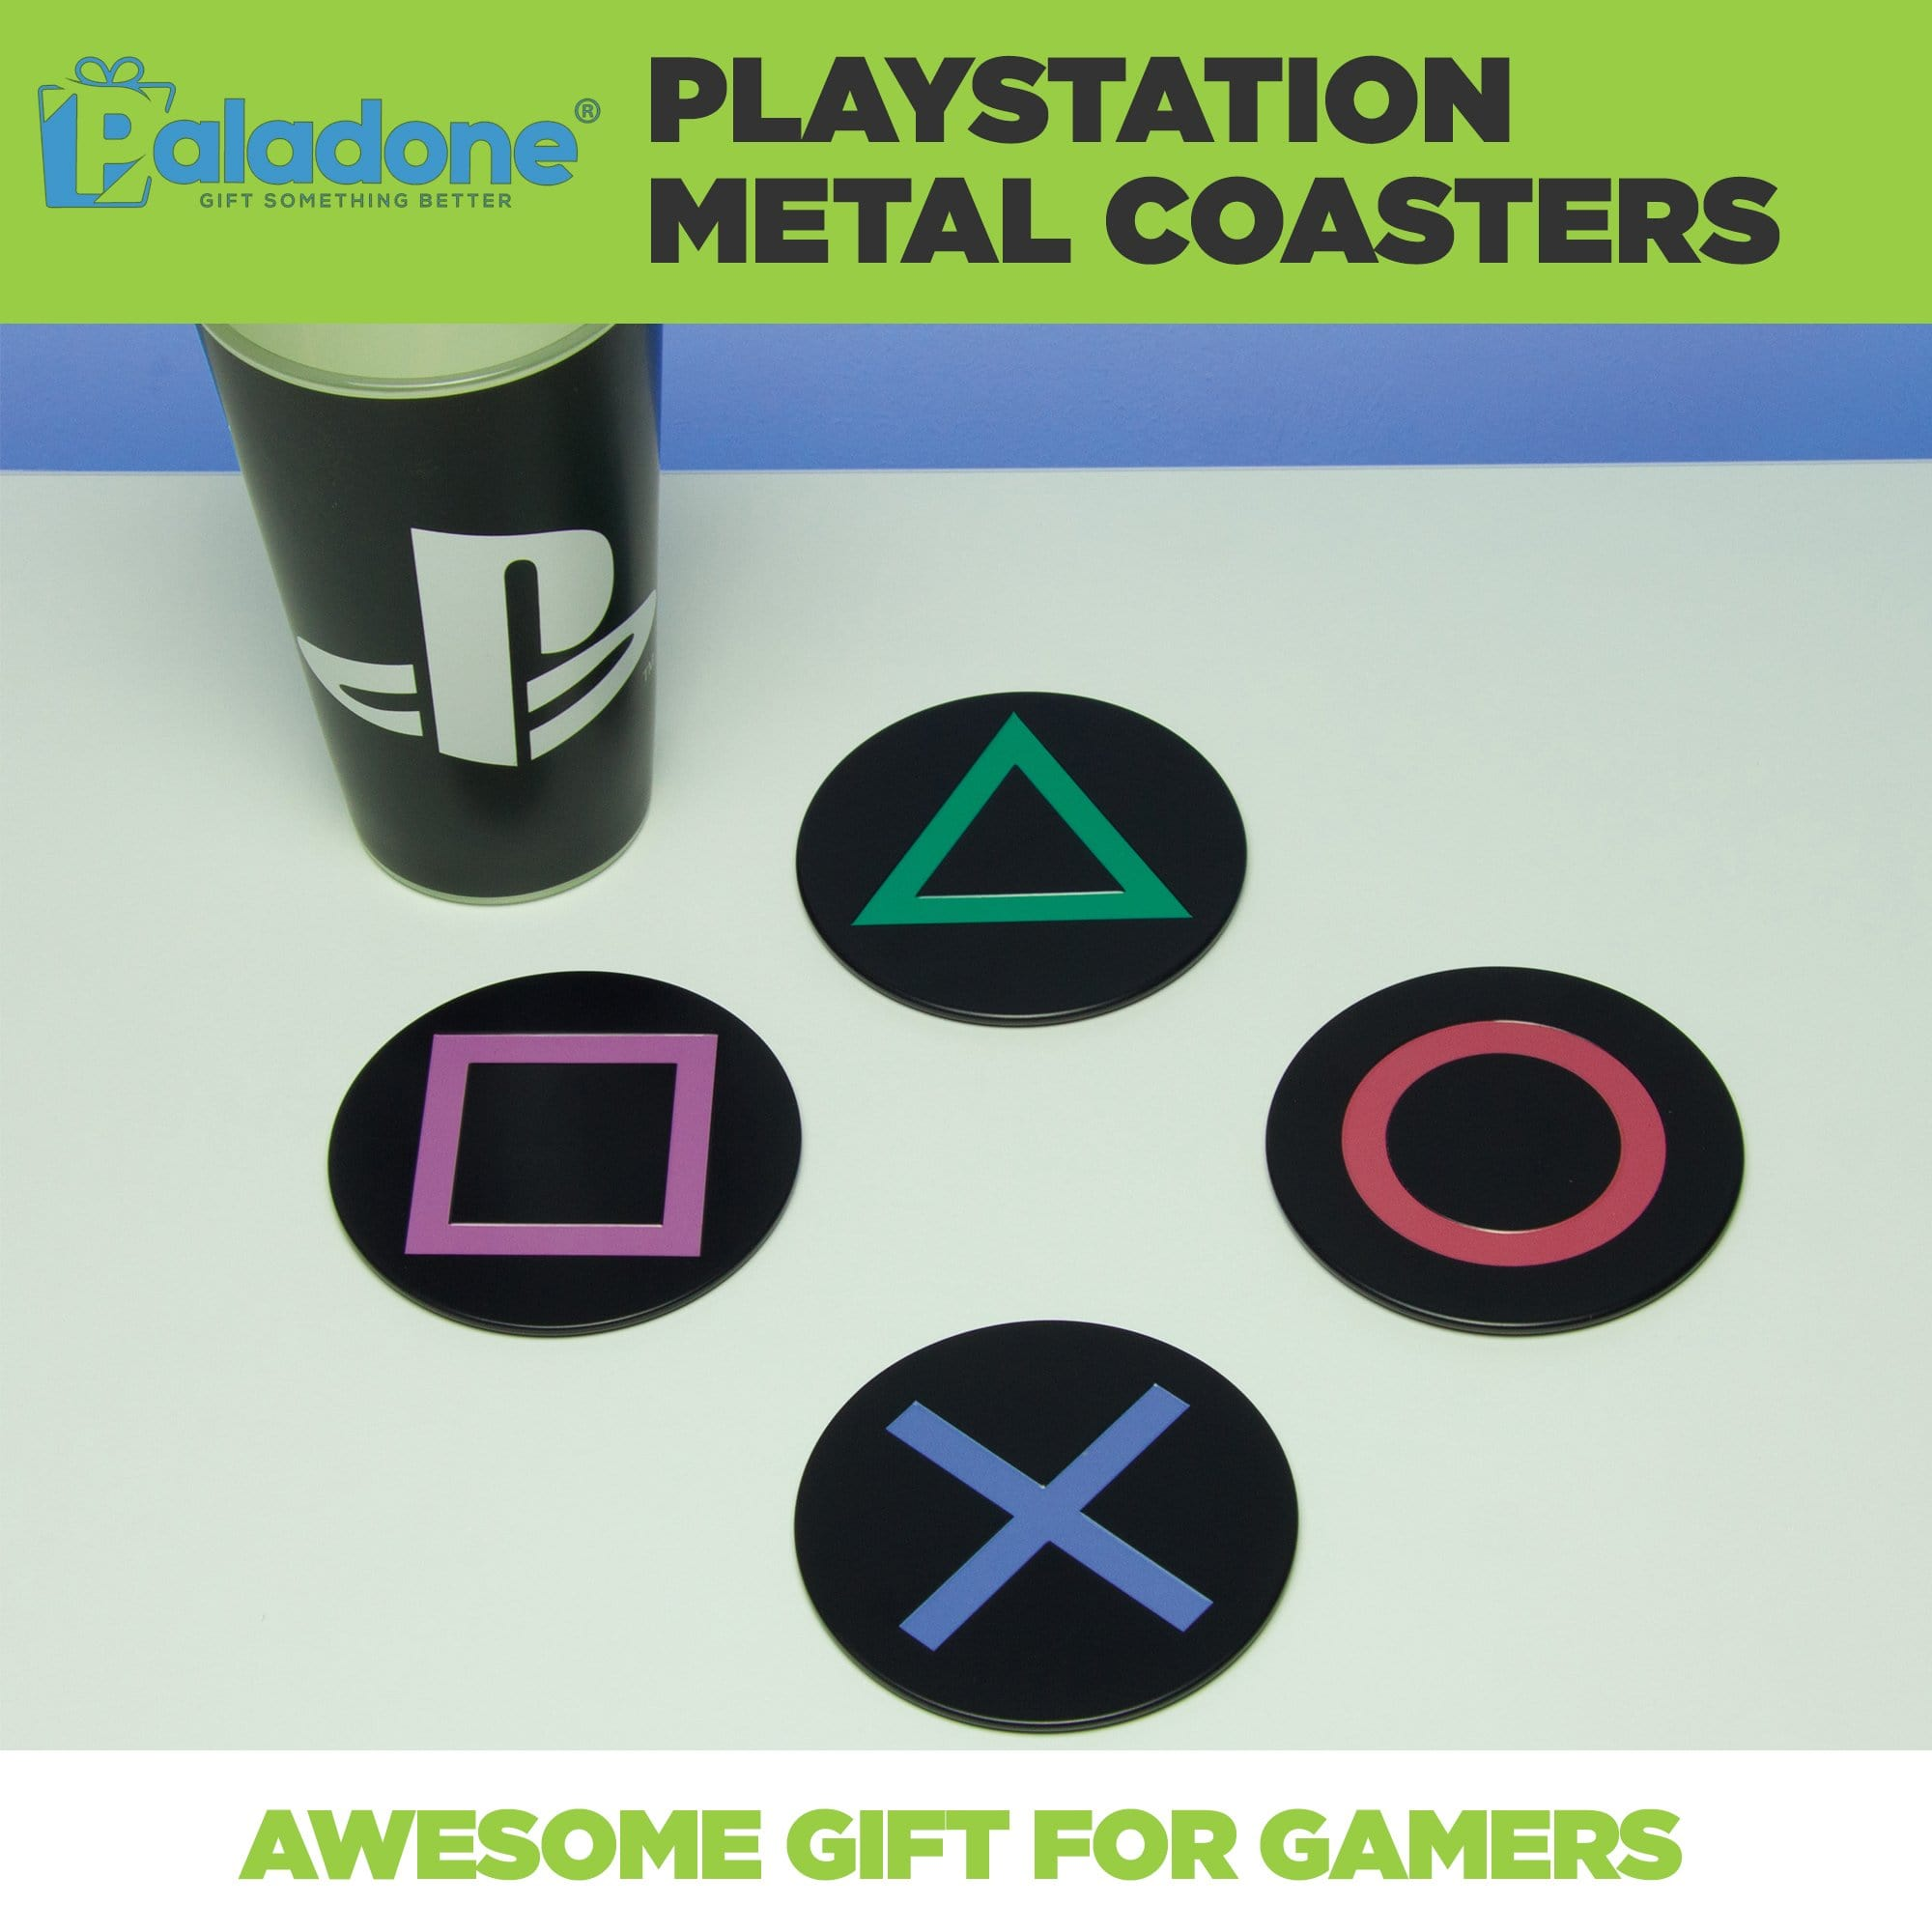 PlayStation coasters shown on a table with the classic PlayStation controller symbols and PlayStation cup.